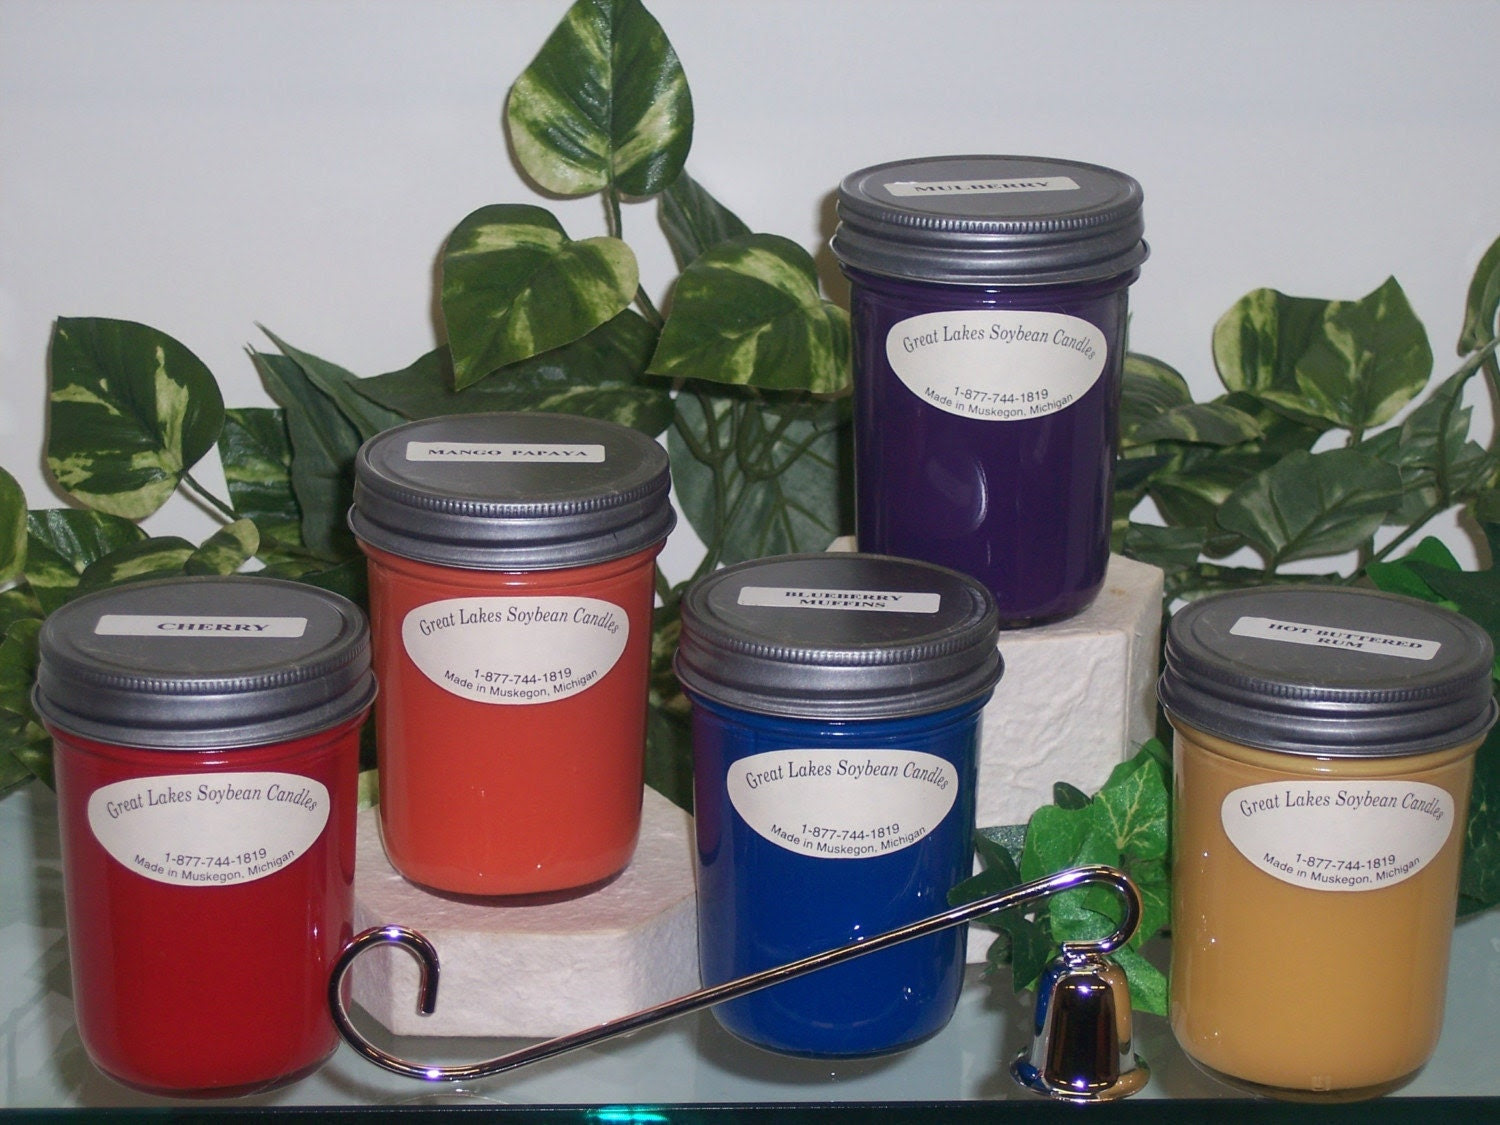 GREAT LAKES SOYBEAN CANDLES 12 JARS FOR 50 DOLLARS SHIPPING FLAT RATE  15 DOLLARS ANY SCENT